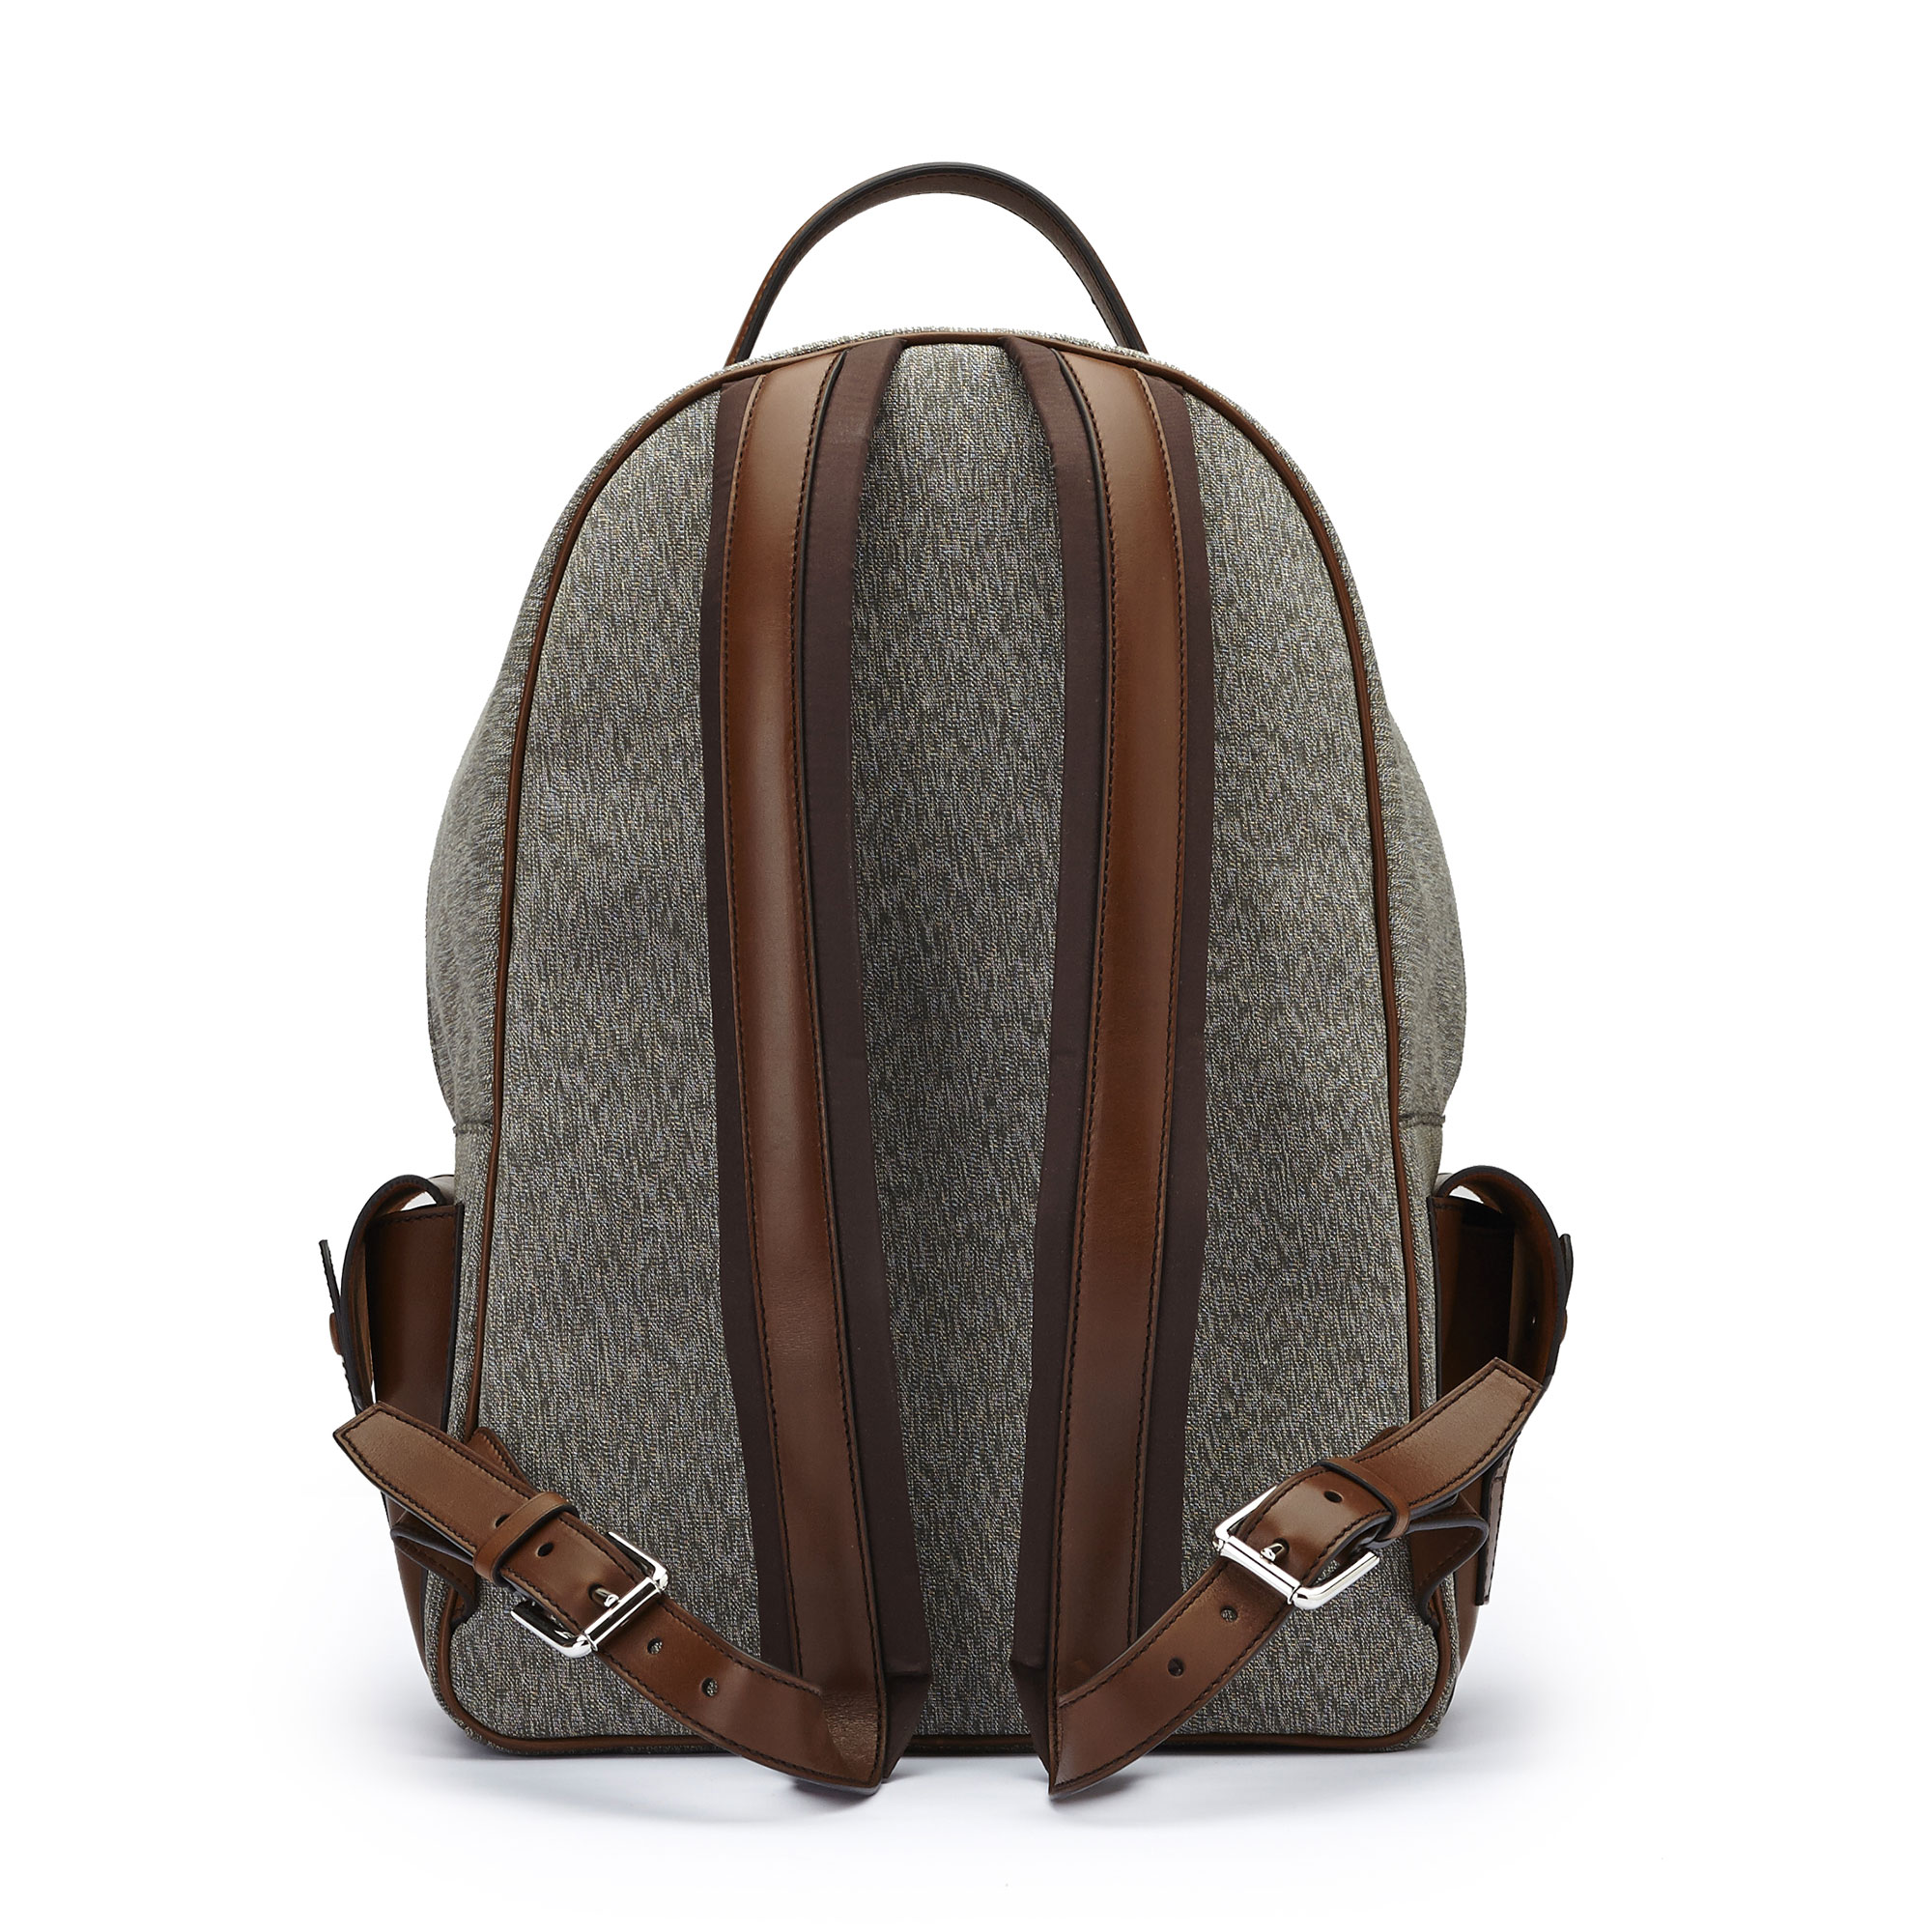 The olive and ivory french calf Zip Backpack by Bertoni 1949 03